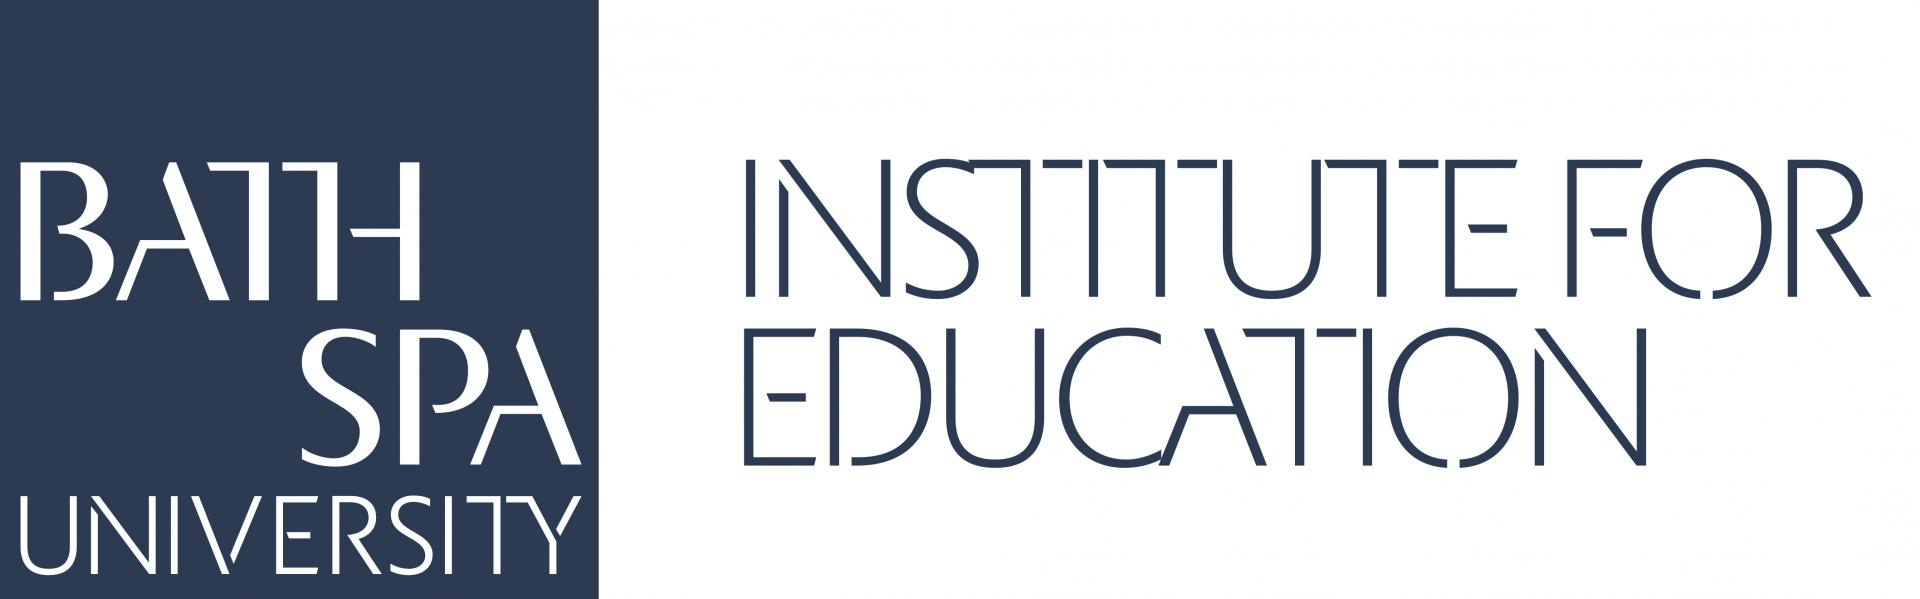 Bath-Spa-Uni-Institute-for-Education-Transparent-3-logo